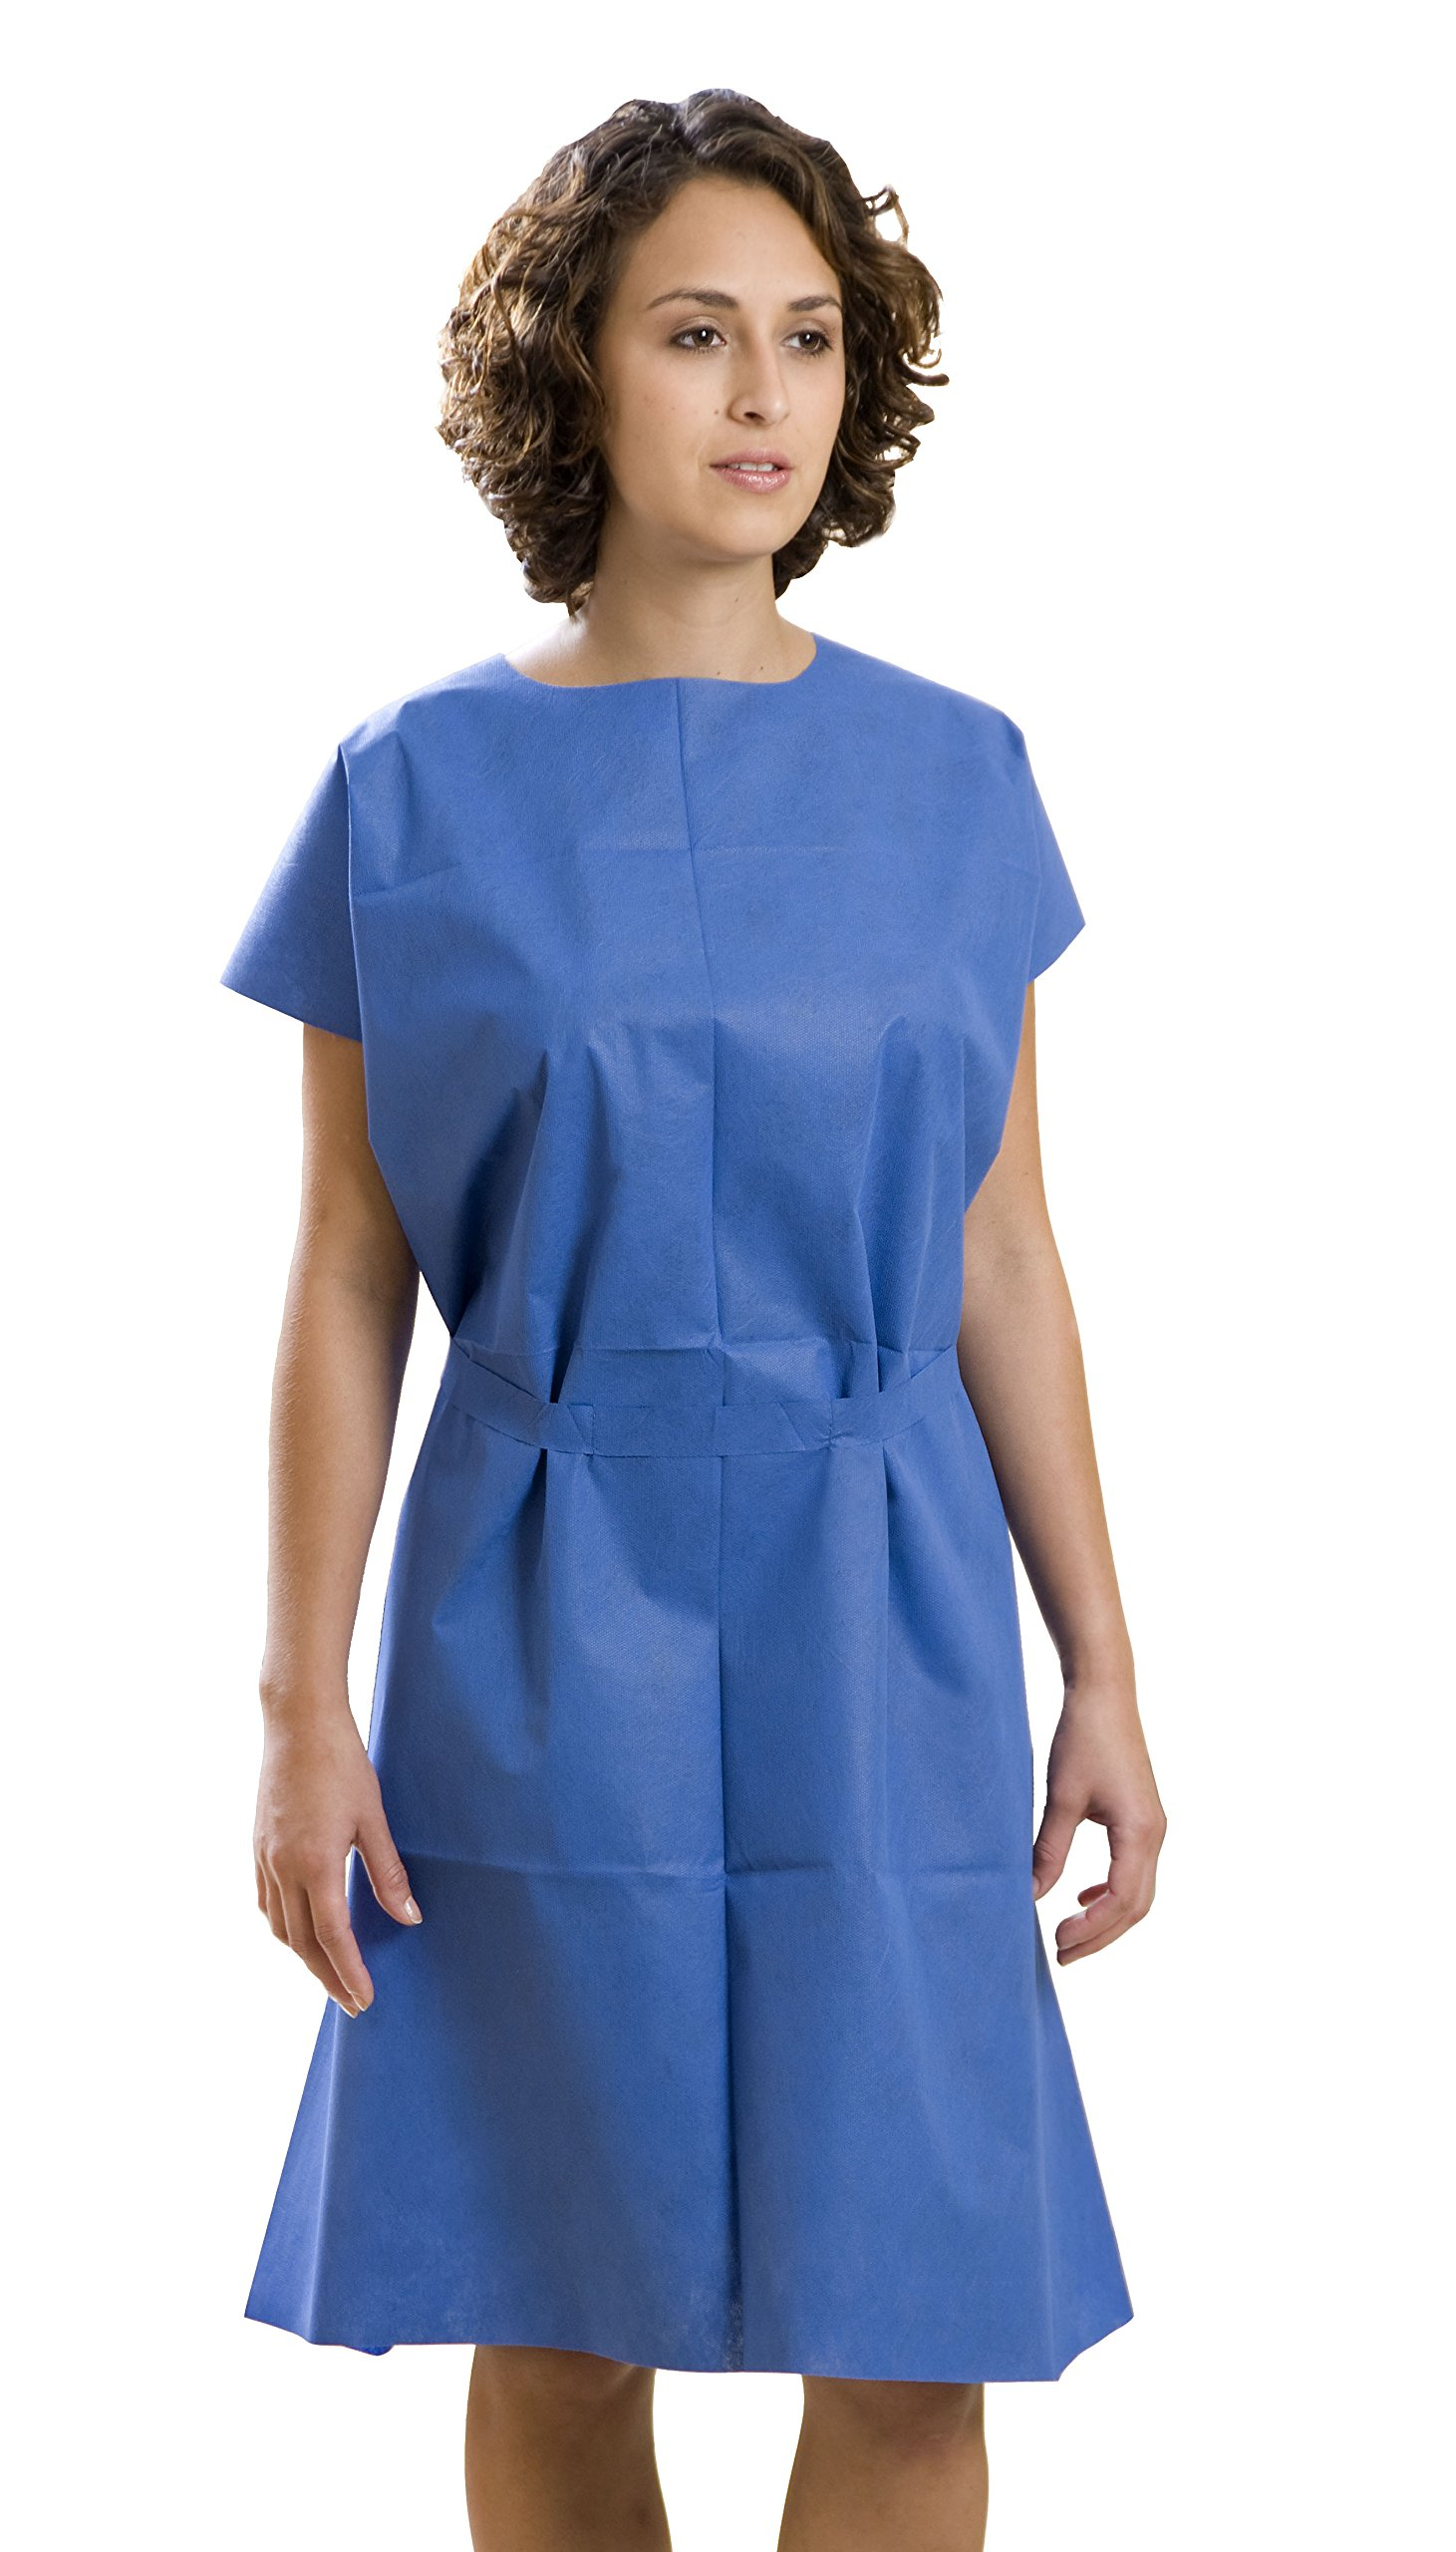 Graham Medical 65333 Gown, Disposable, 20''w x 32''l (Pack of 50) by Graham Medical